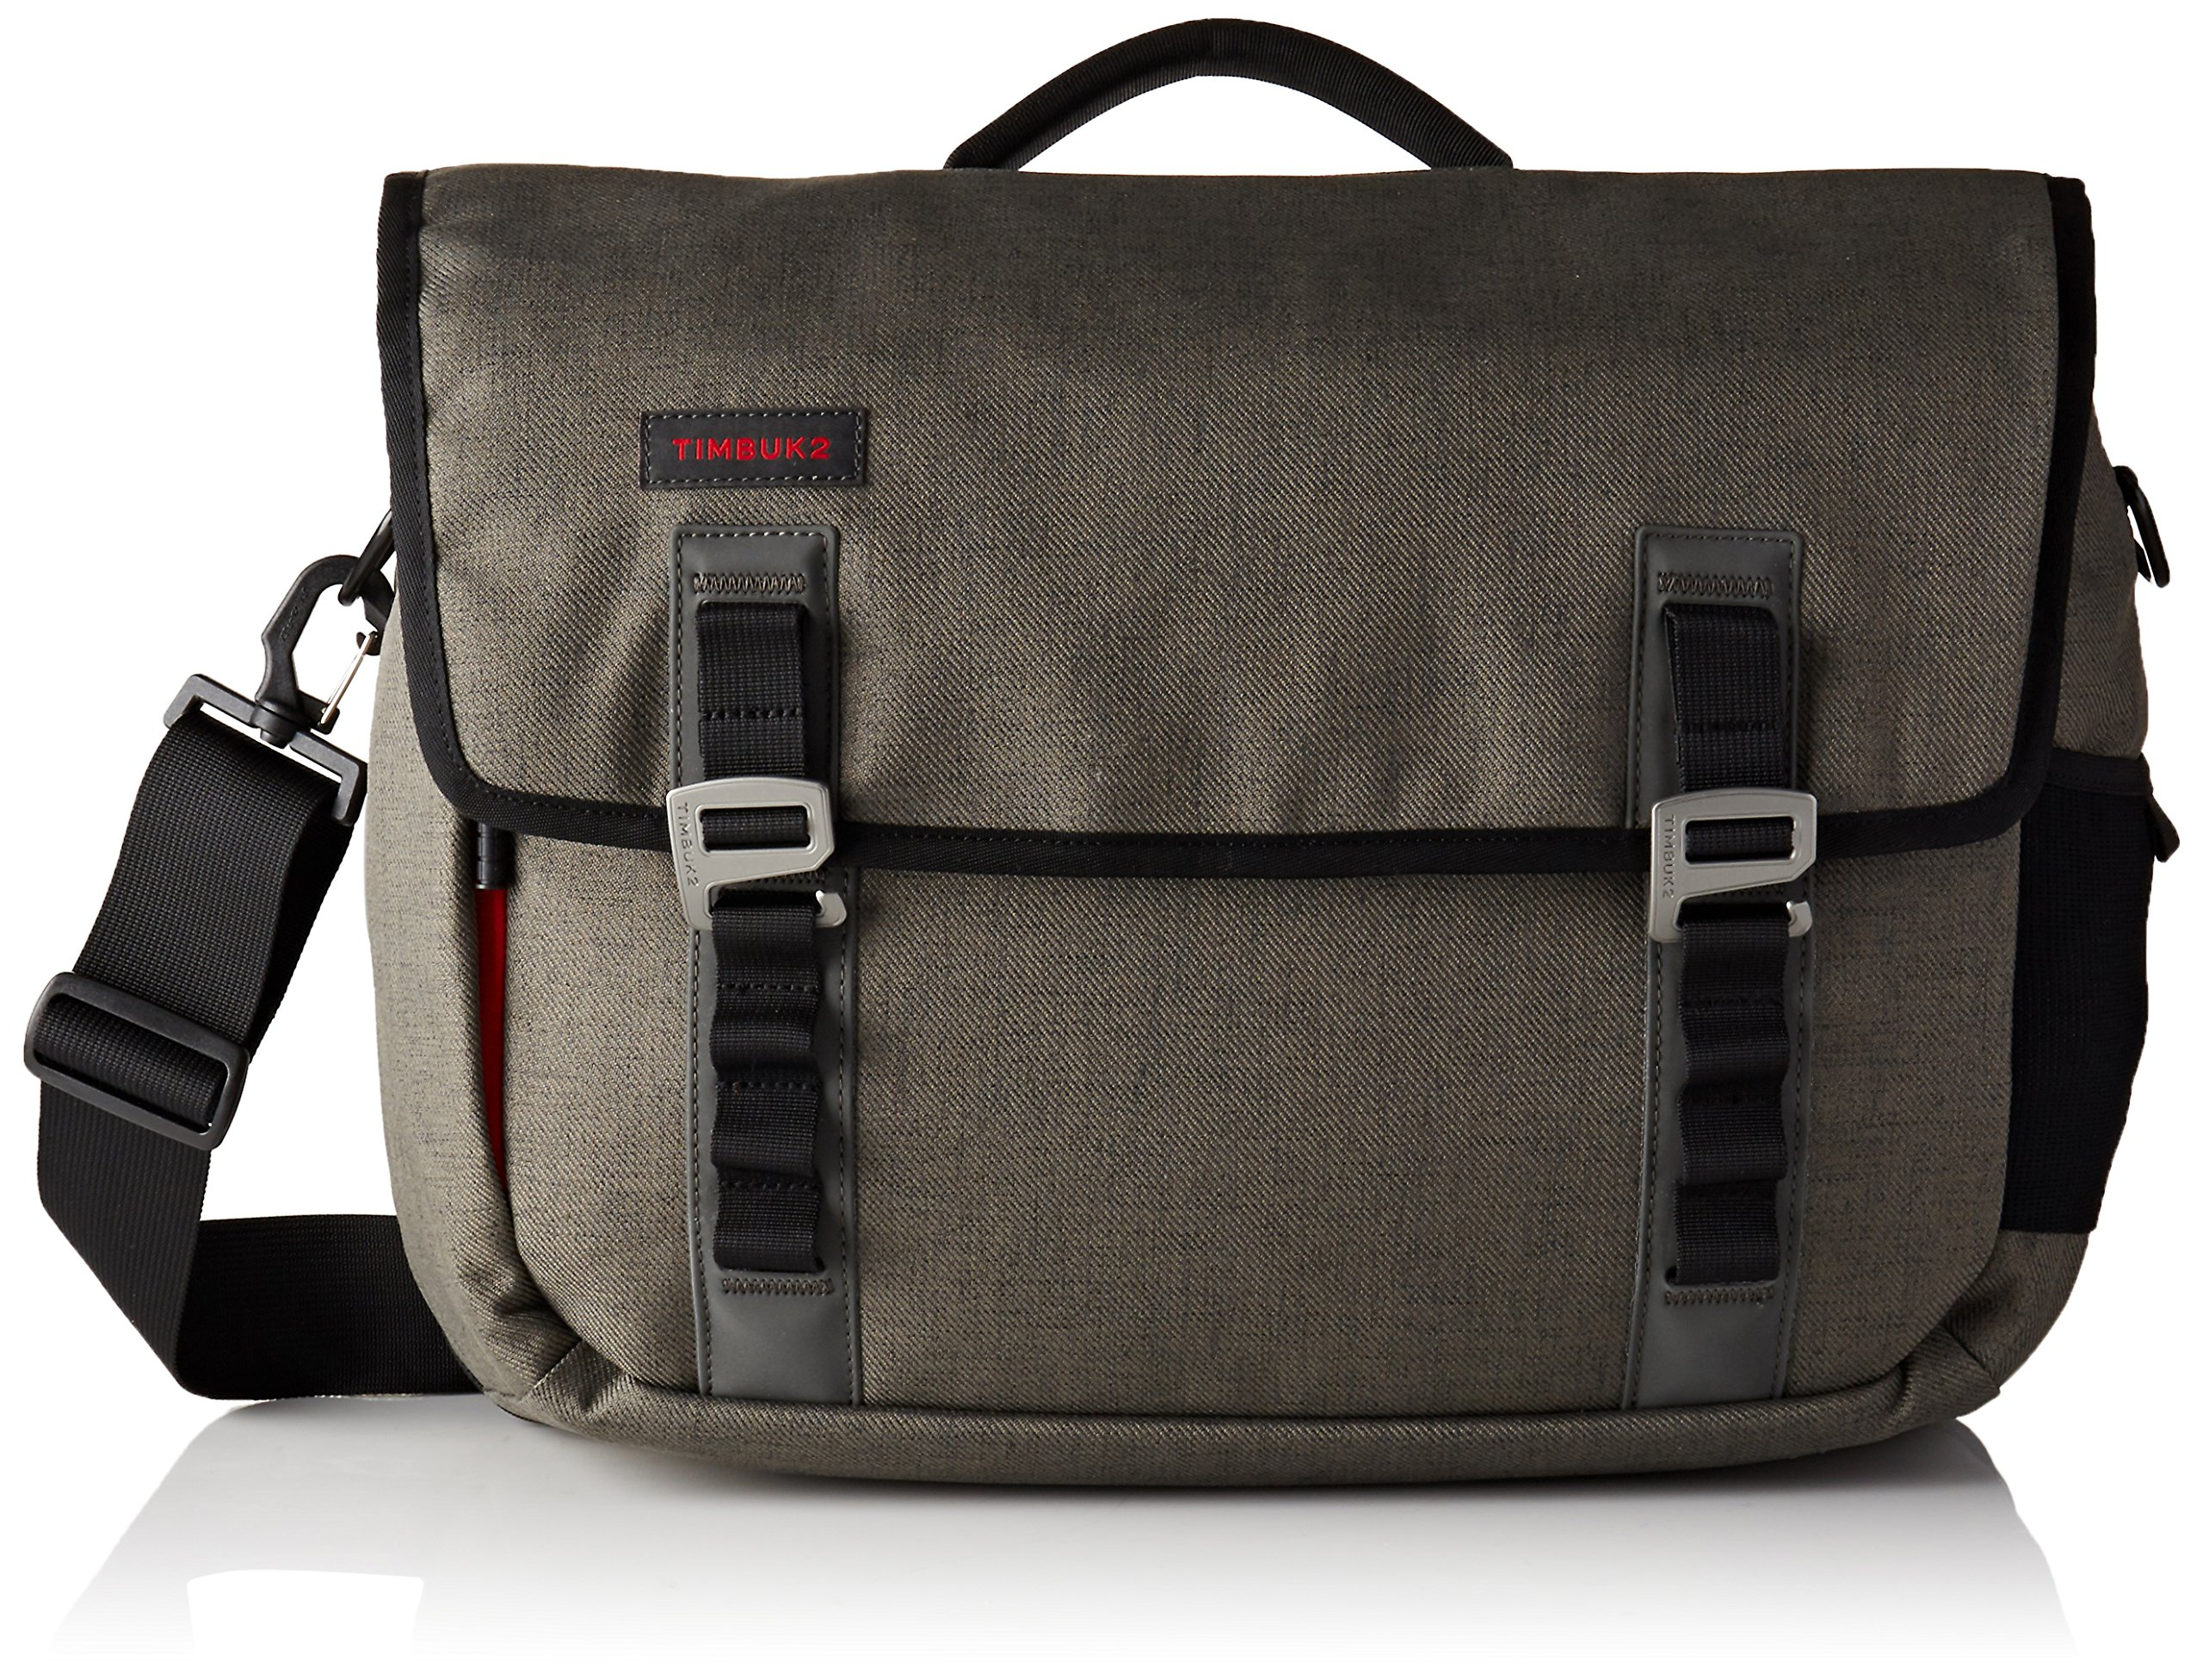 Timbuk2 Command Messenger, Carbon Full-Cycle Twill, Medium by Timbuk2